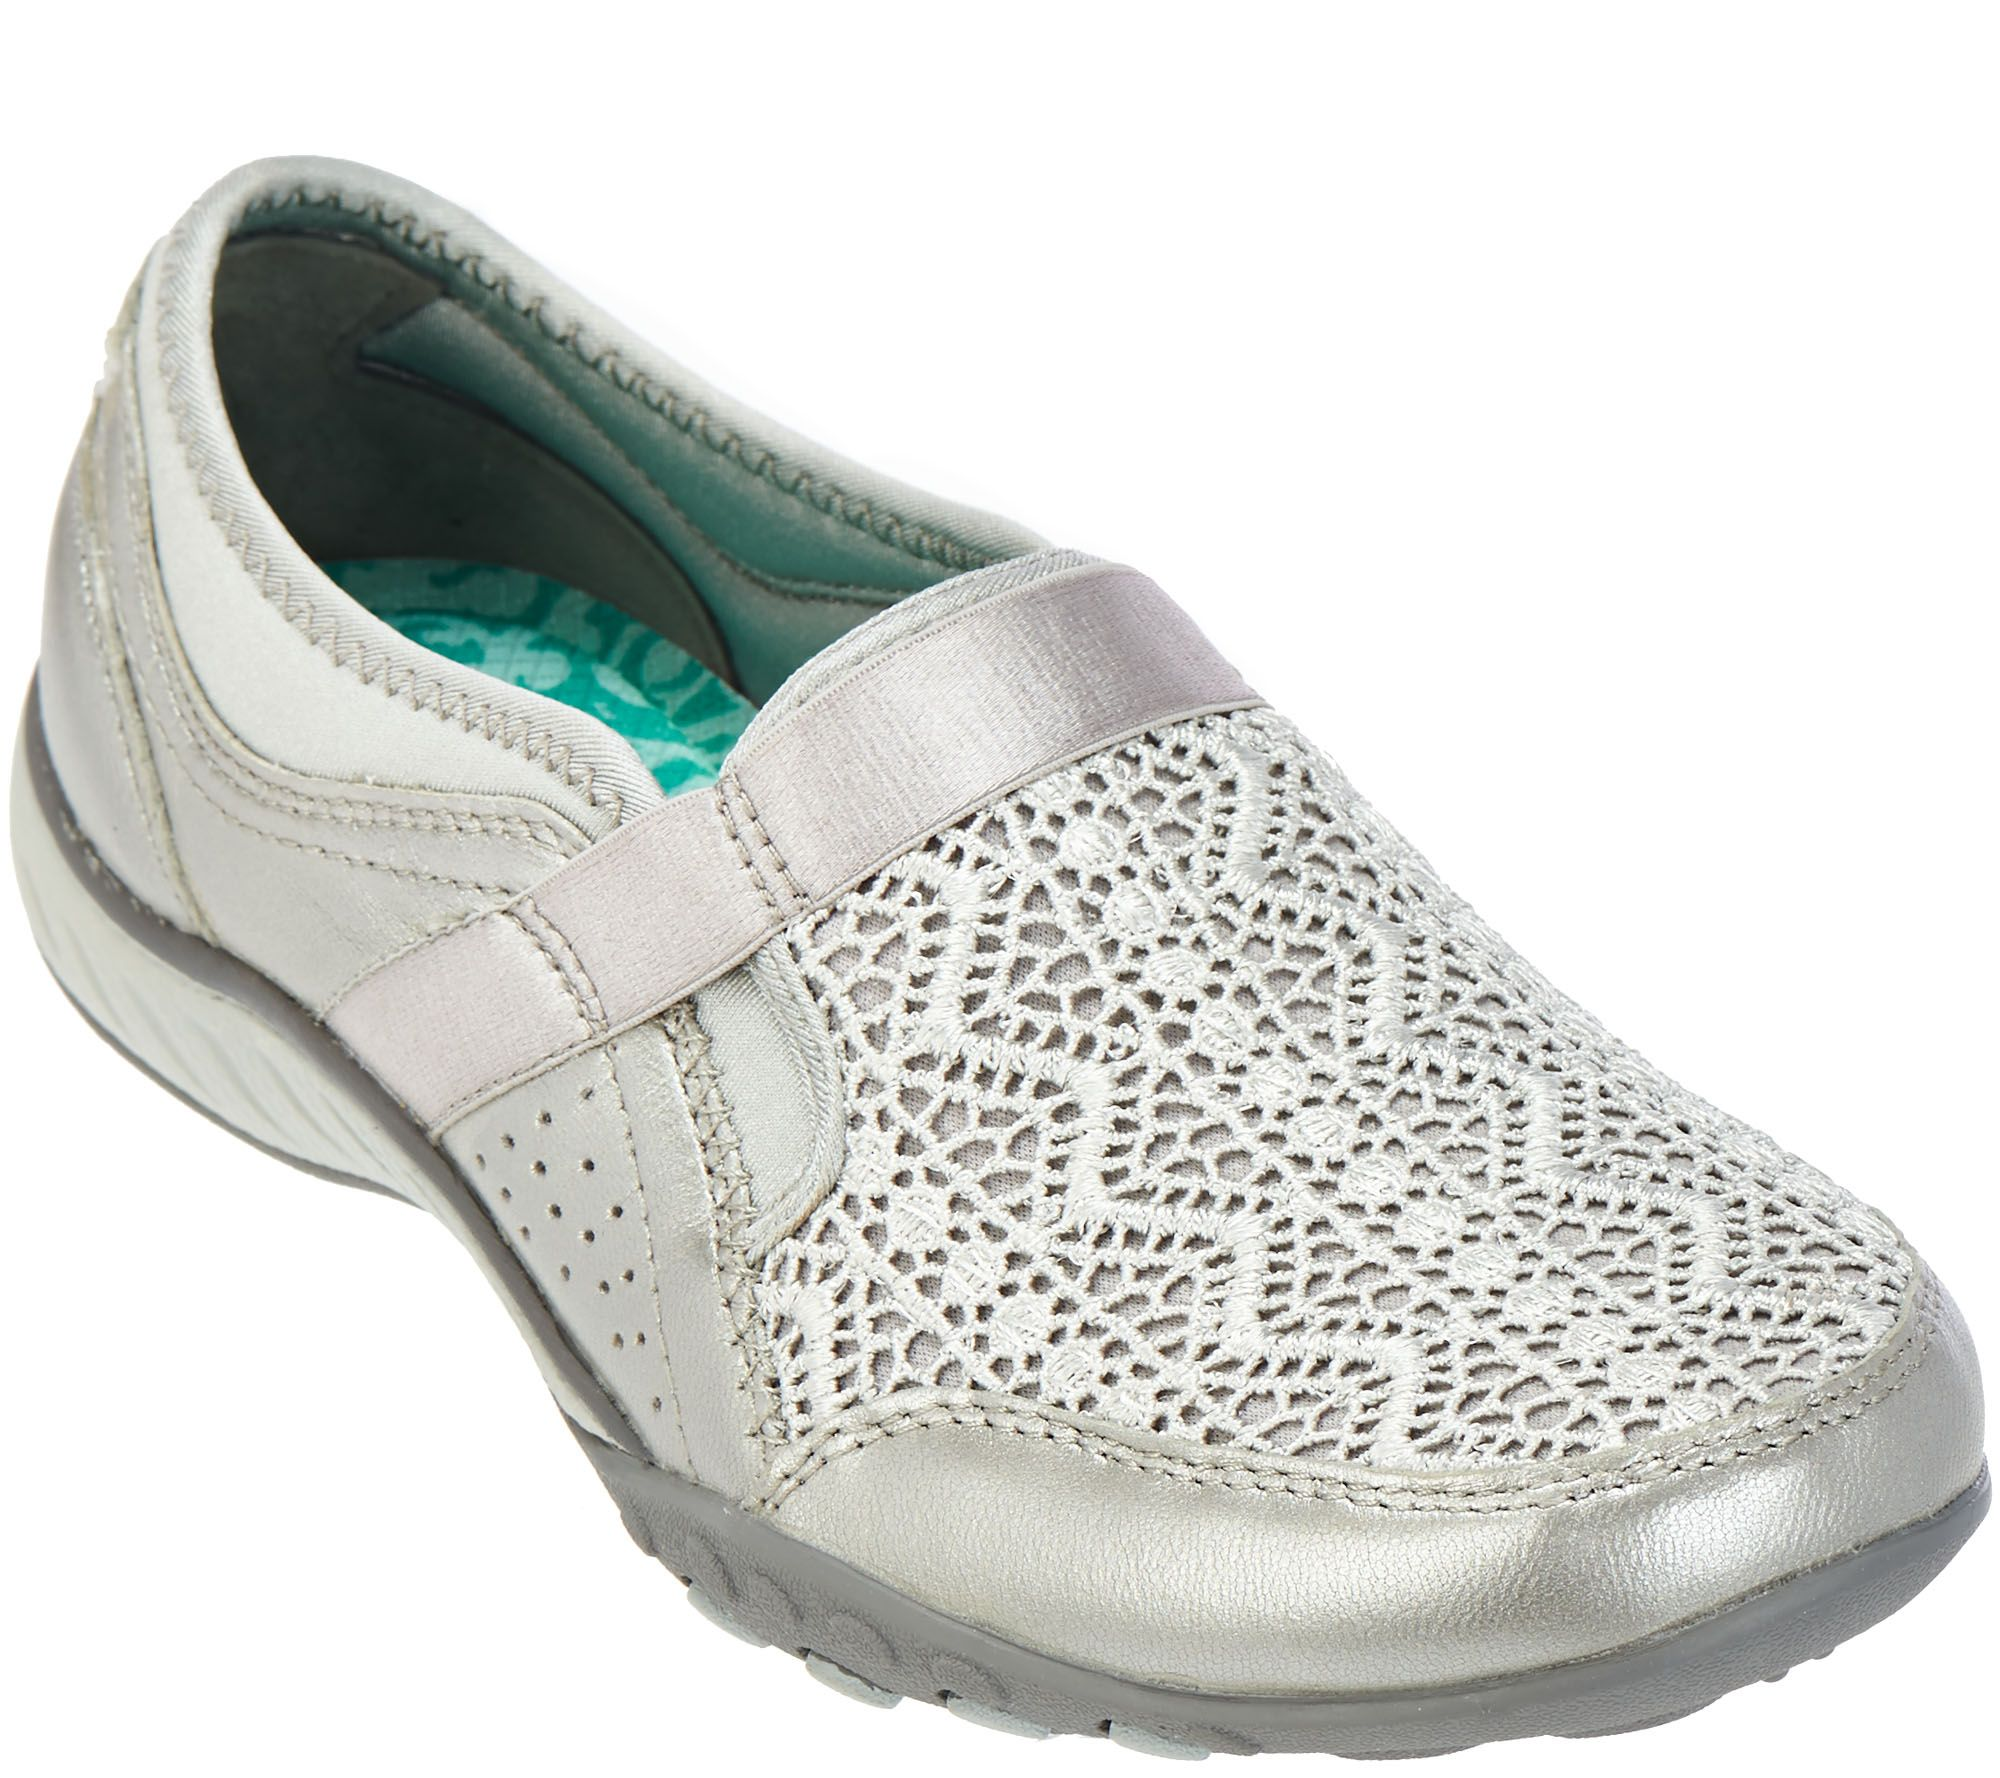 b3c0a3069178 Skechers Breathe-Easy Crochet Leather slip-ons - Clean Sweep - Page 1 —  QVC.com